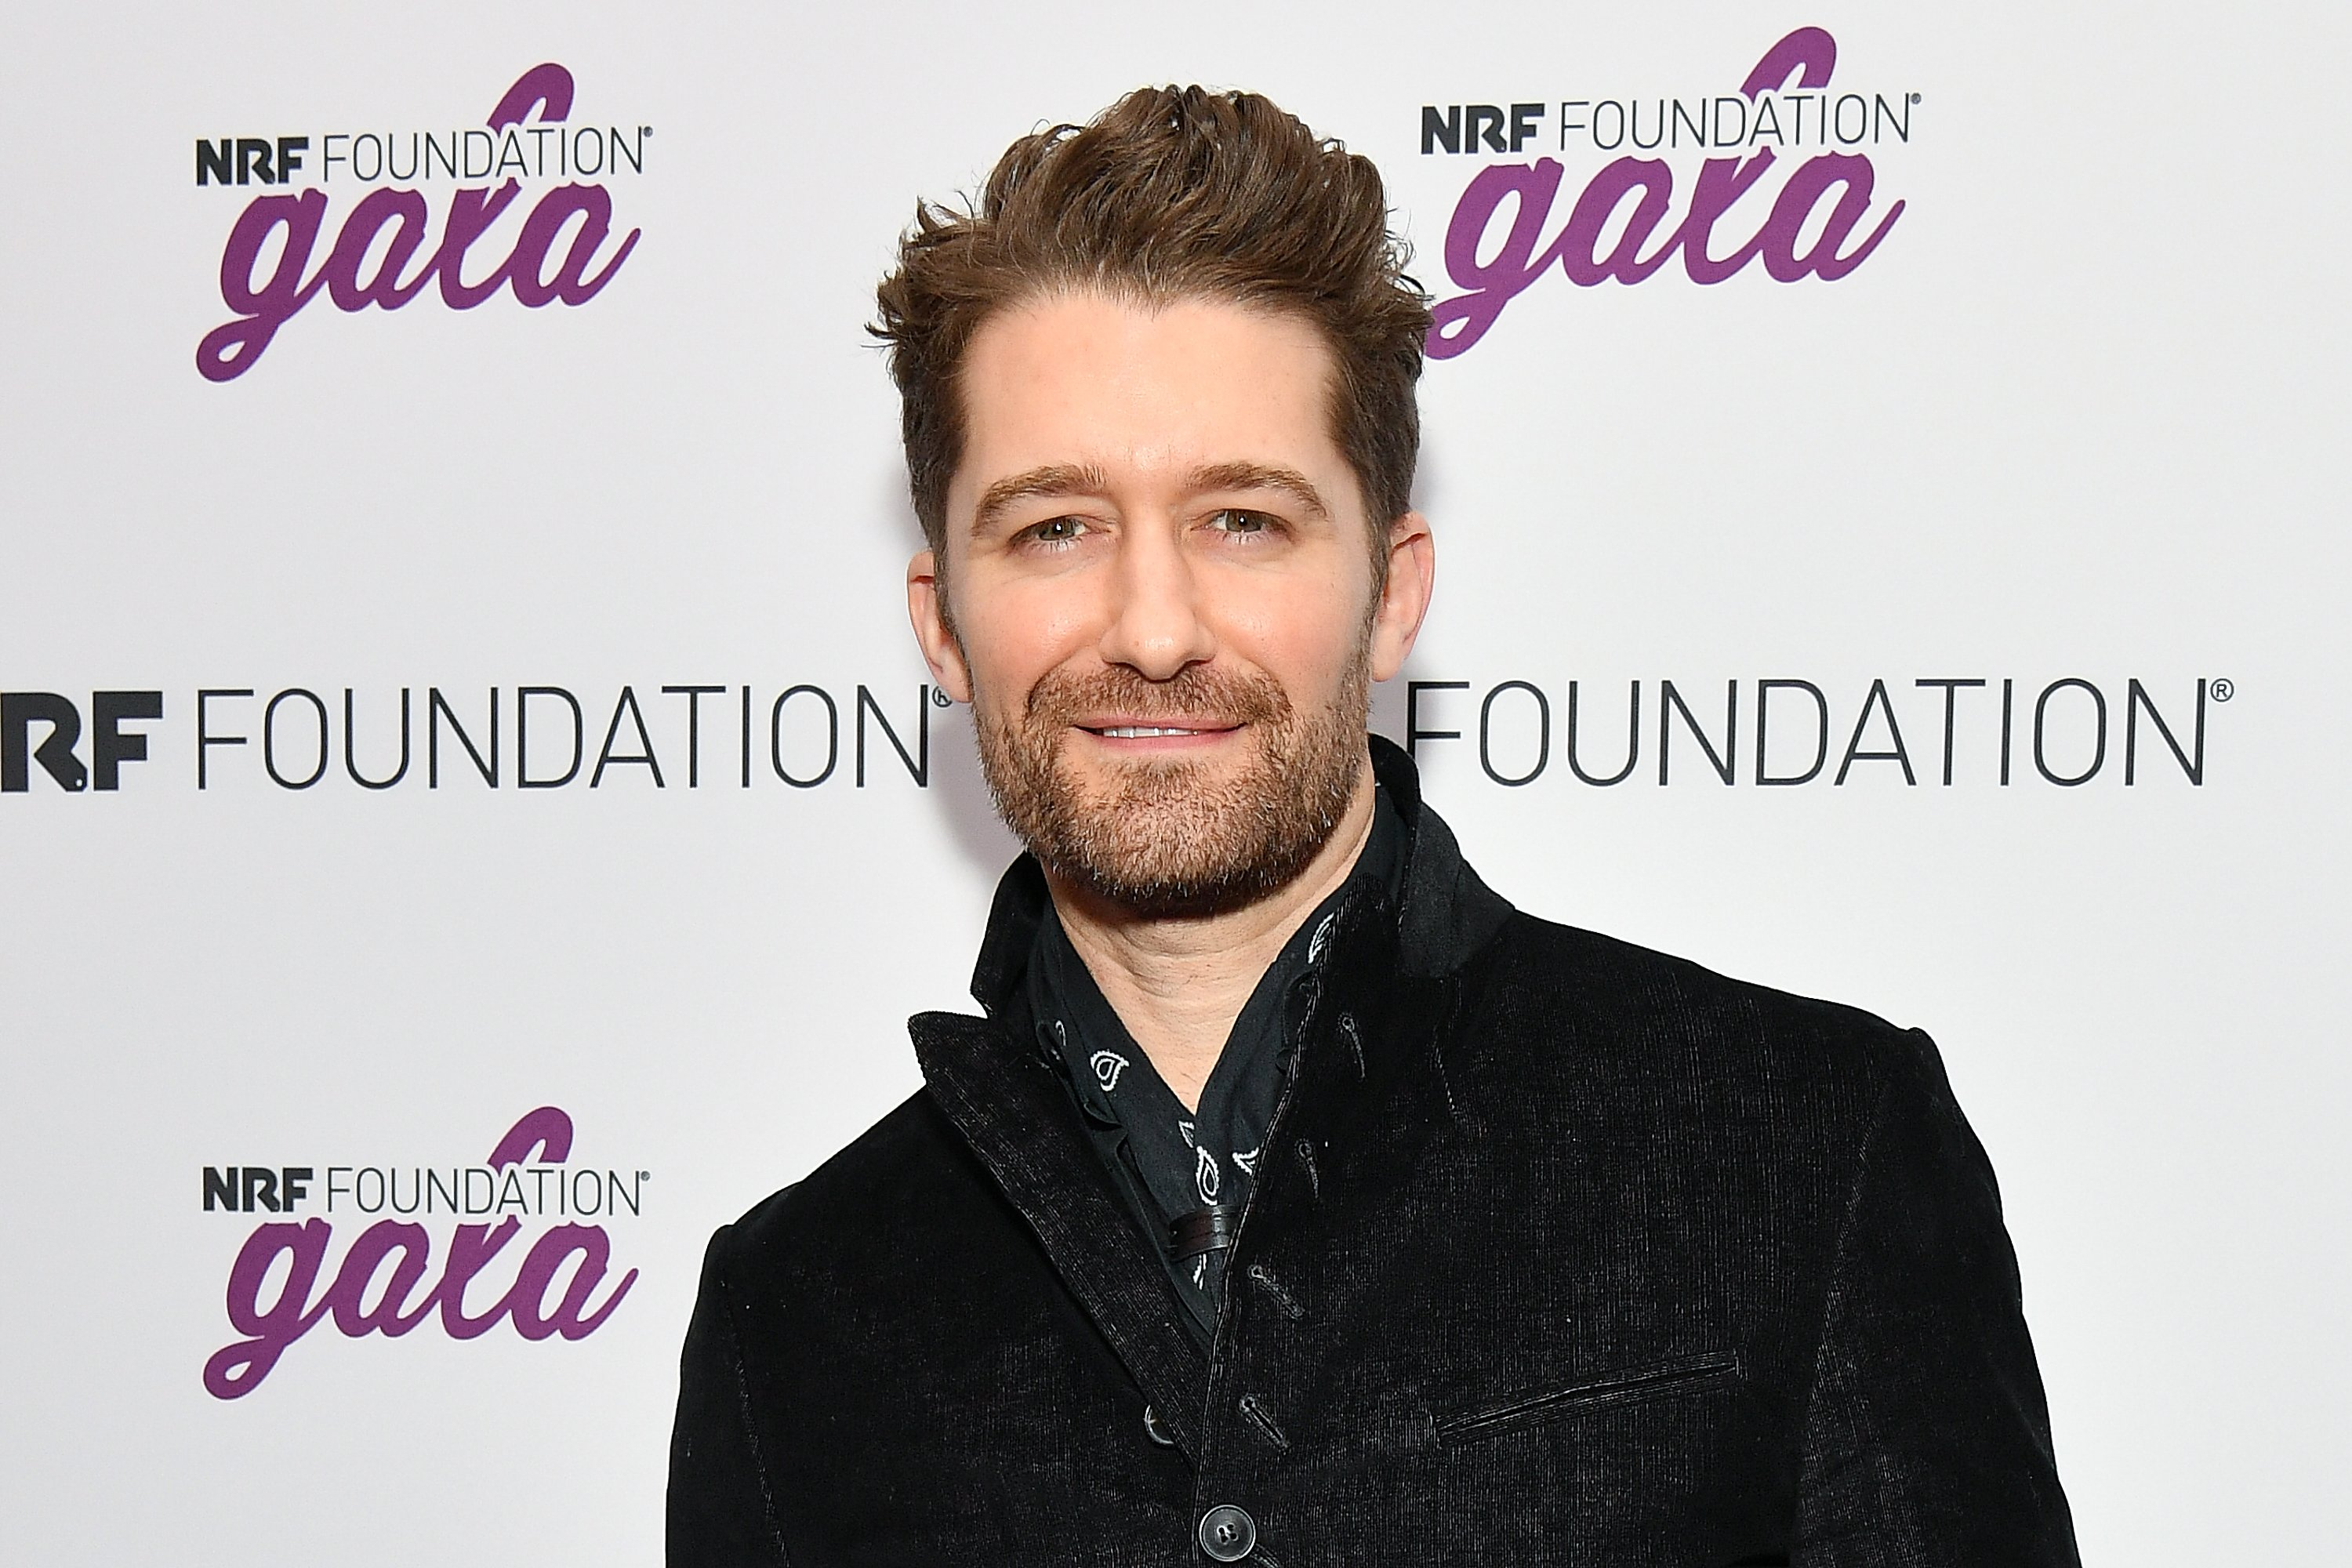 Matthew Morrison attends the 5th Annual NRF Foundation Gala at the Sheraton New York Times Square on January 13, 2019 in New York City | Photo: Getty Images